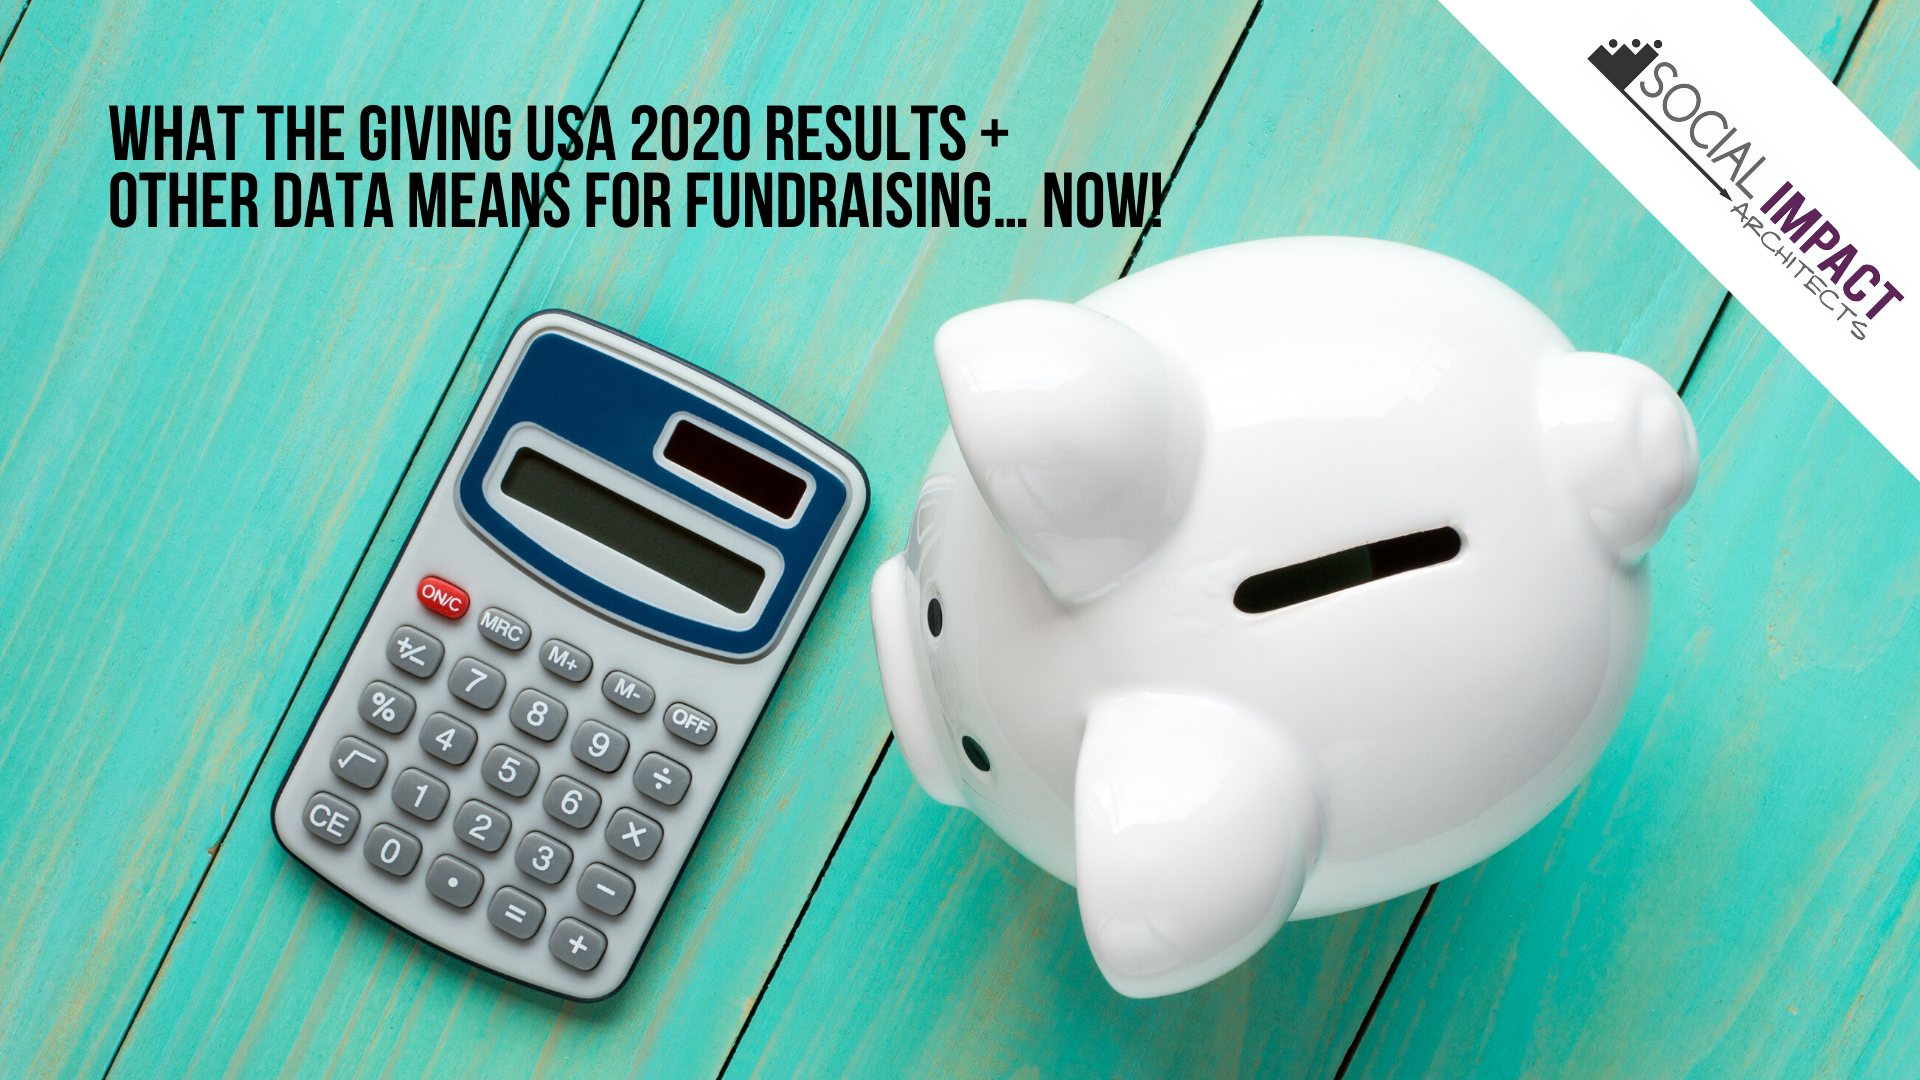 [Zoom Meeting] What the Giving USA 2020 Results & Other Data Means for Fundraising… Now!